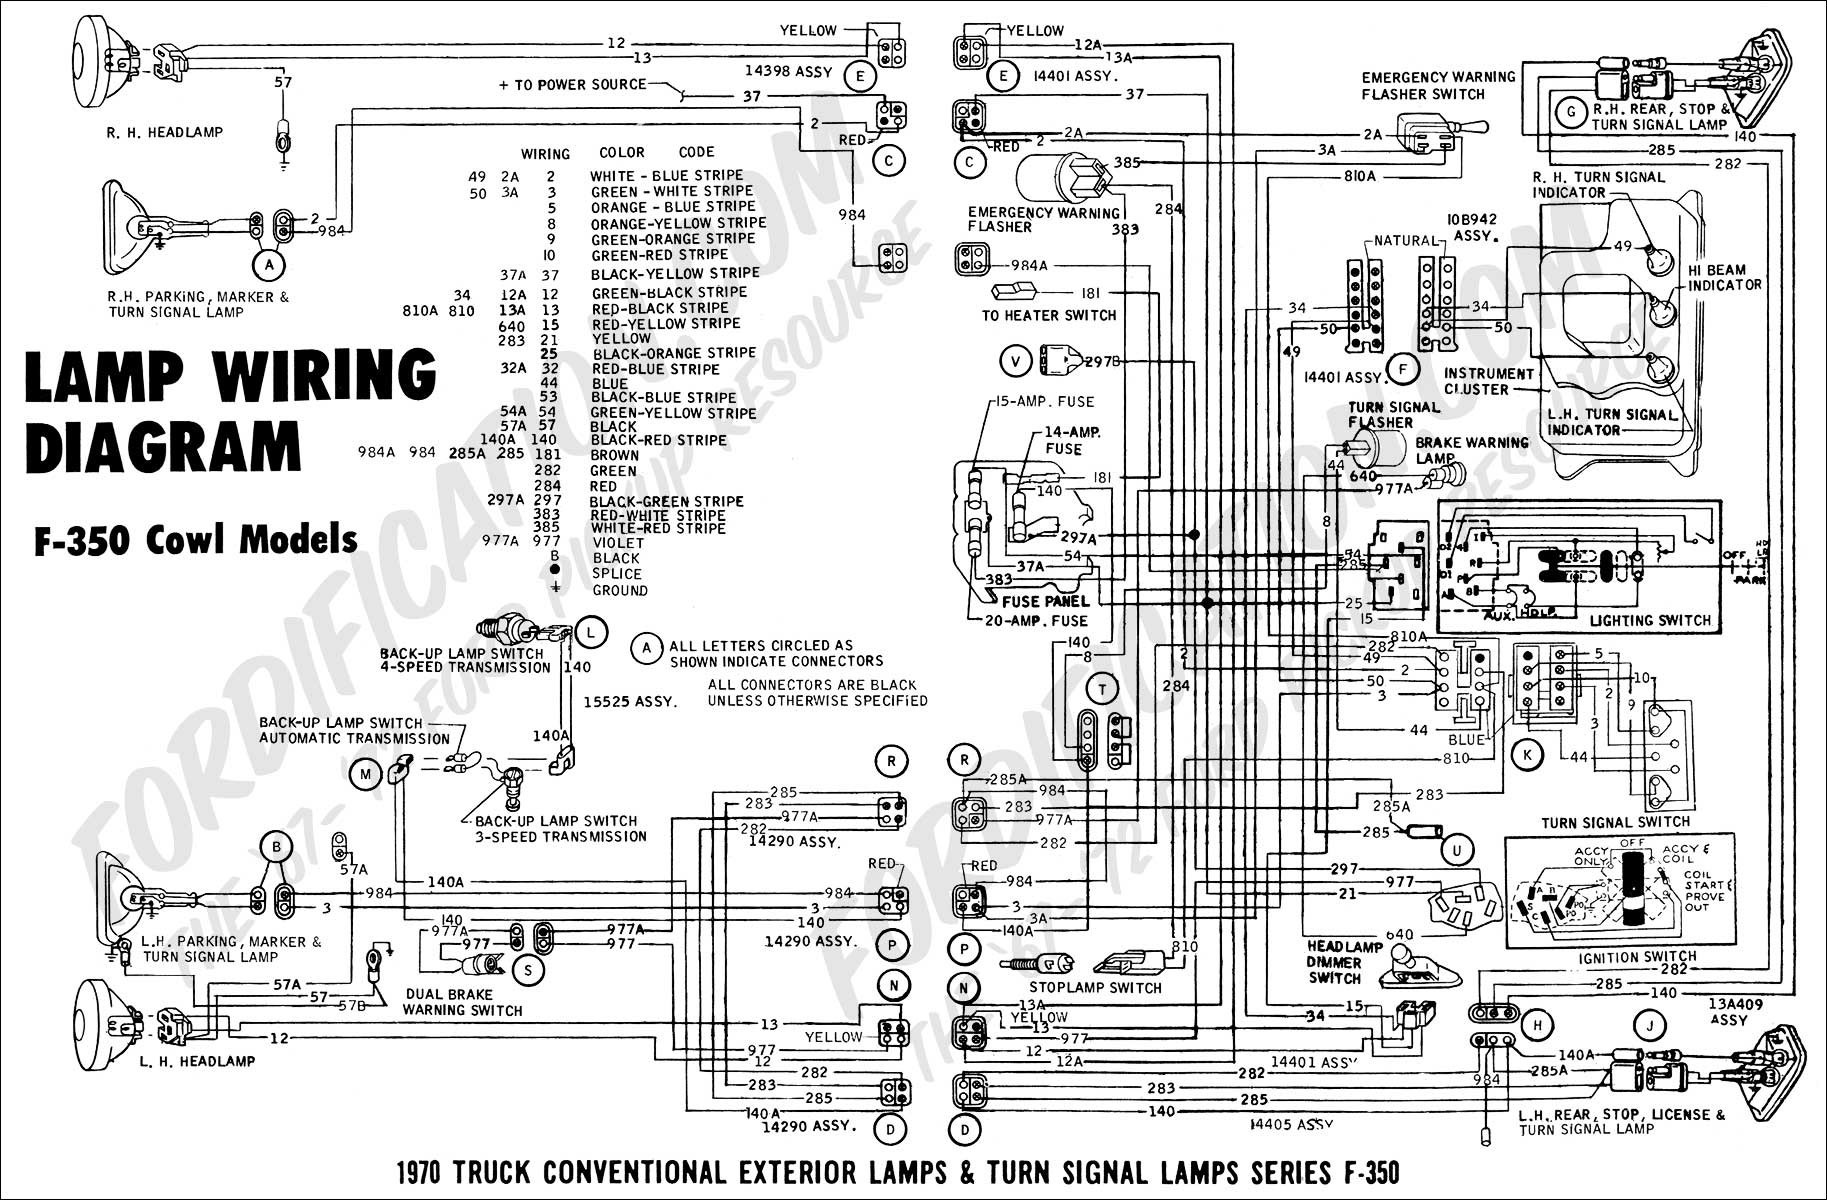 2000 ford F350 Tail Light Wiring Diagram ford F350 Wiring Diagram Free Awesome 2011 Super Duty Of 2000 ford F350 Tail Light Wiring Diagram